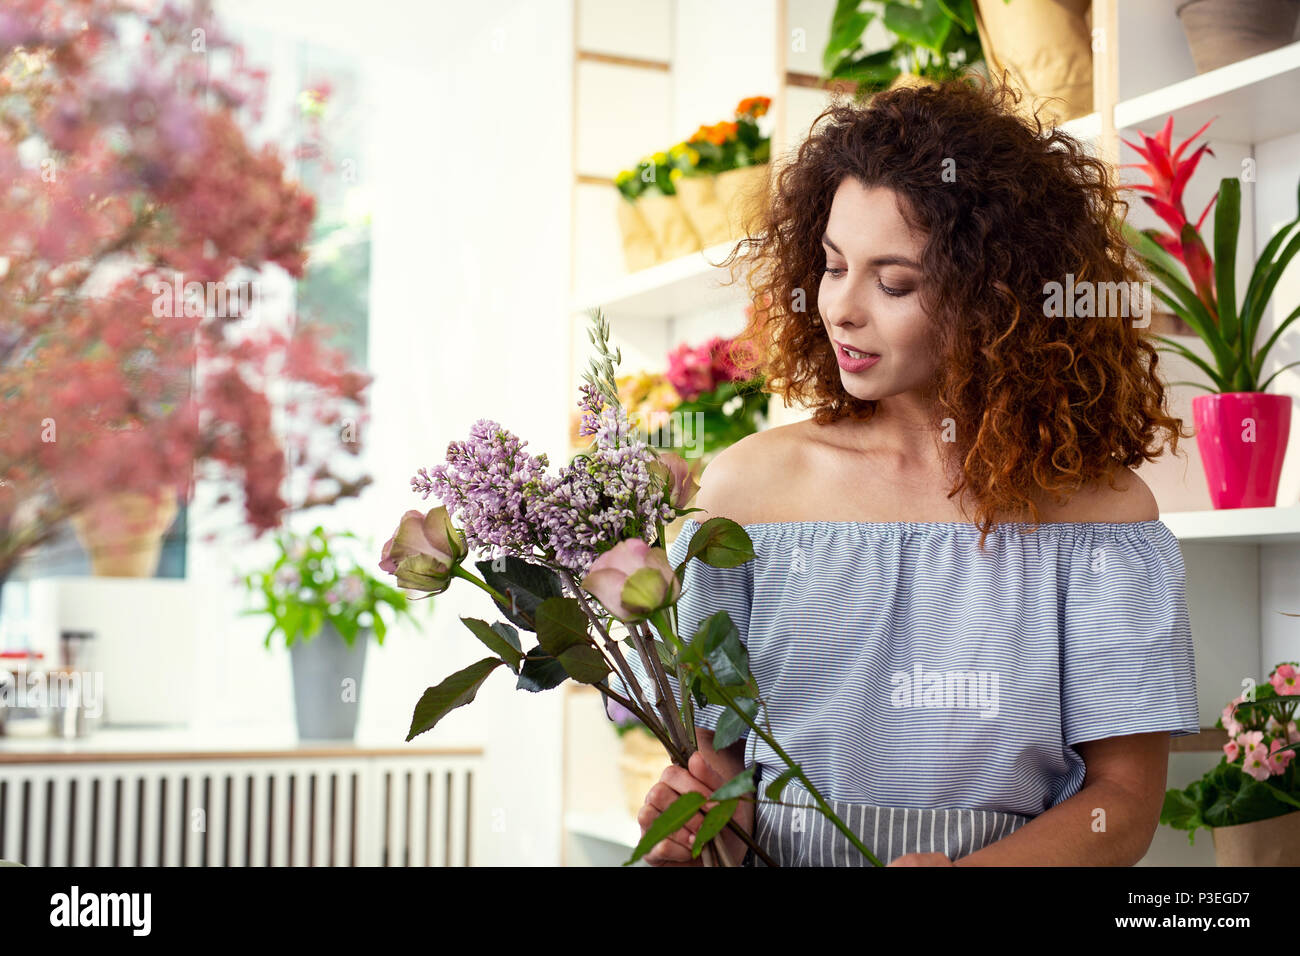 Pleasant creative woman looking at the flowers - Stock Image